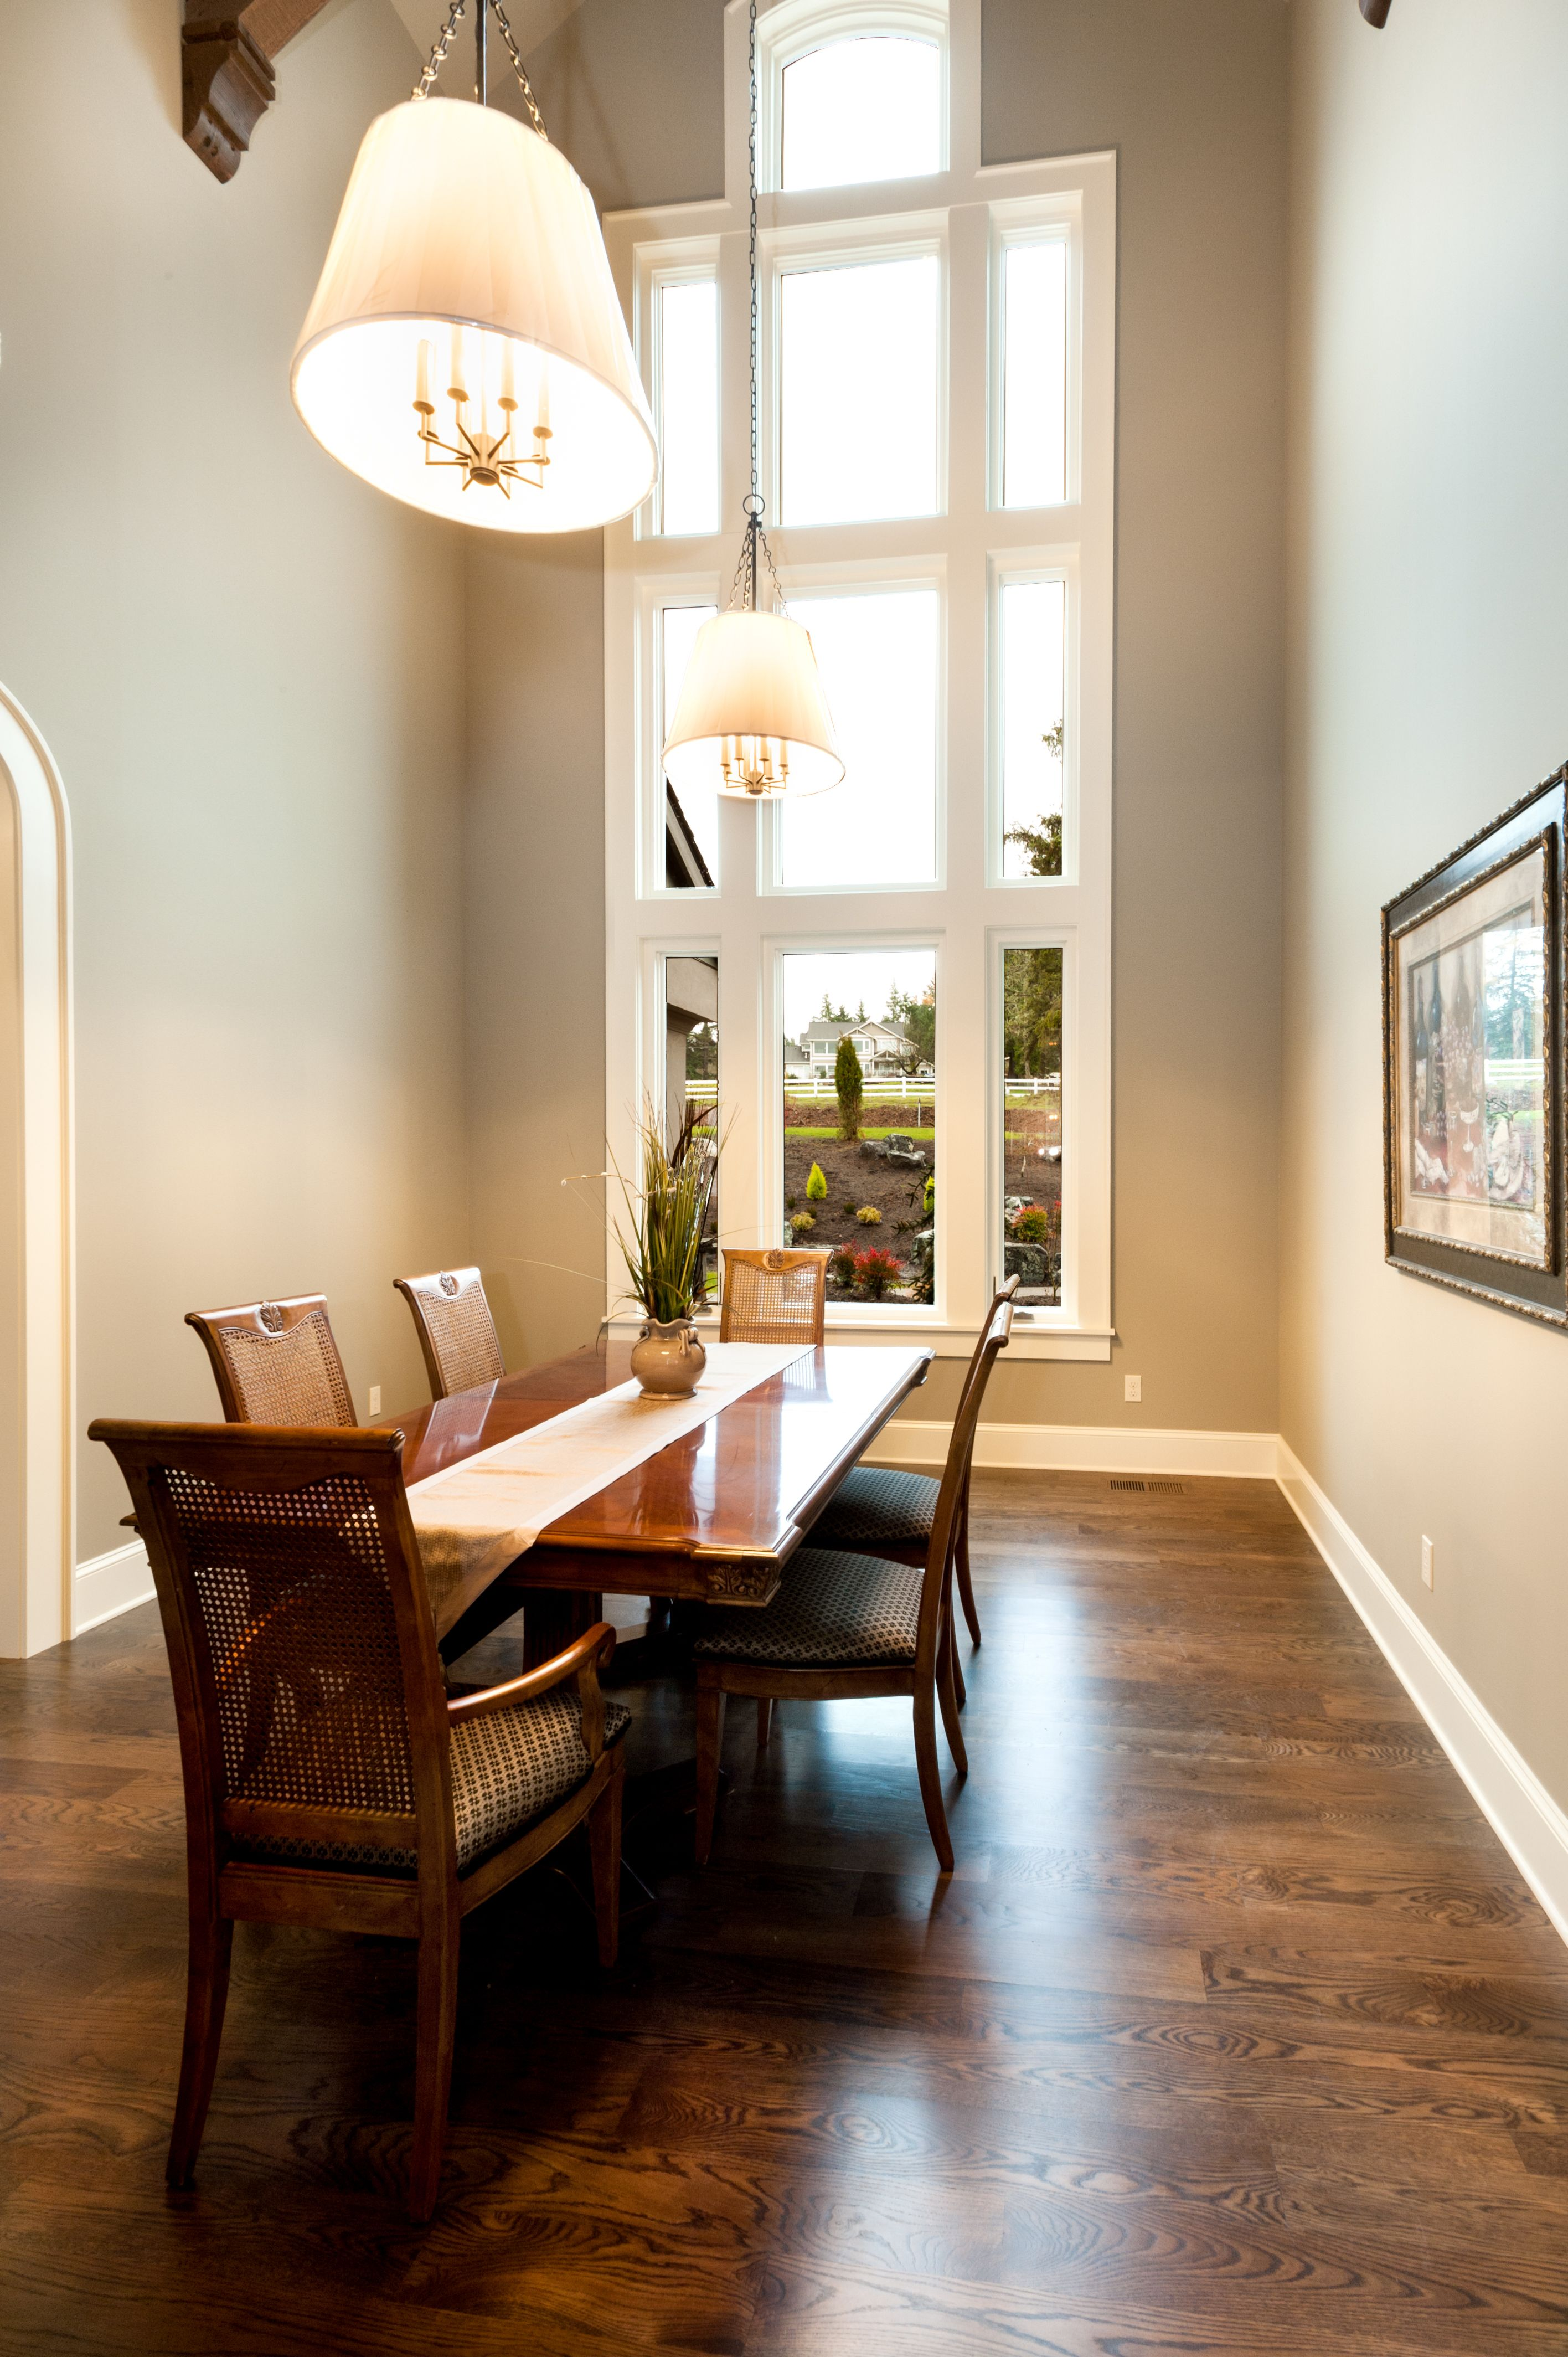 Dining room with white oak floors, white painted trim and